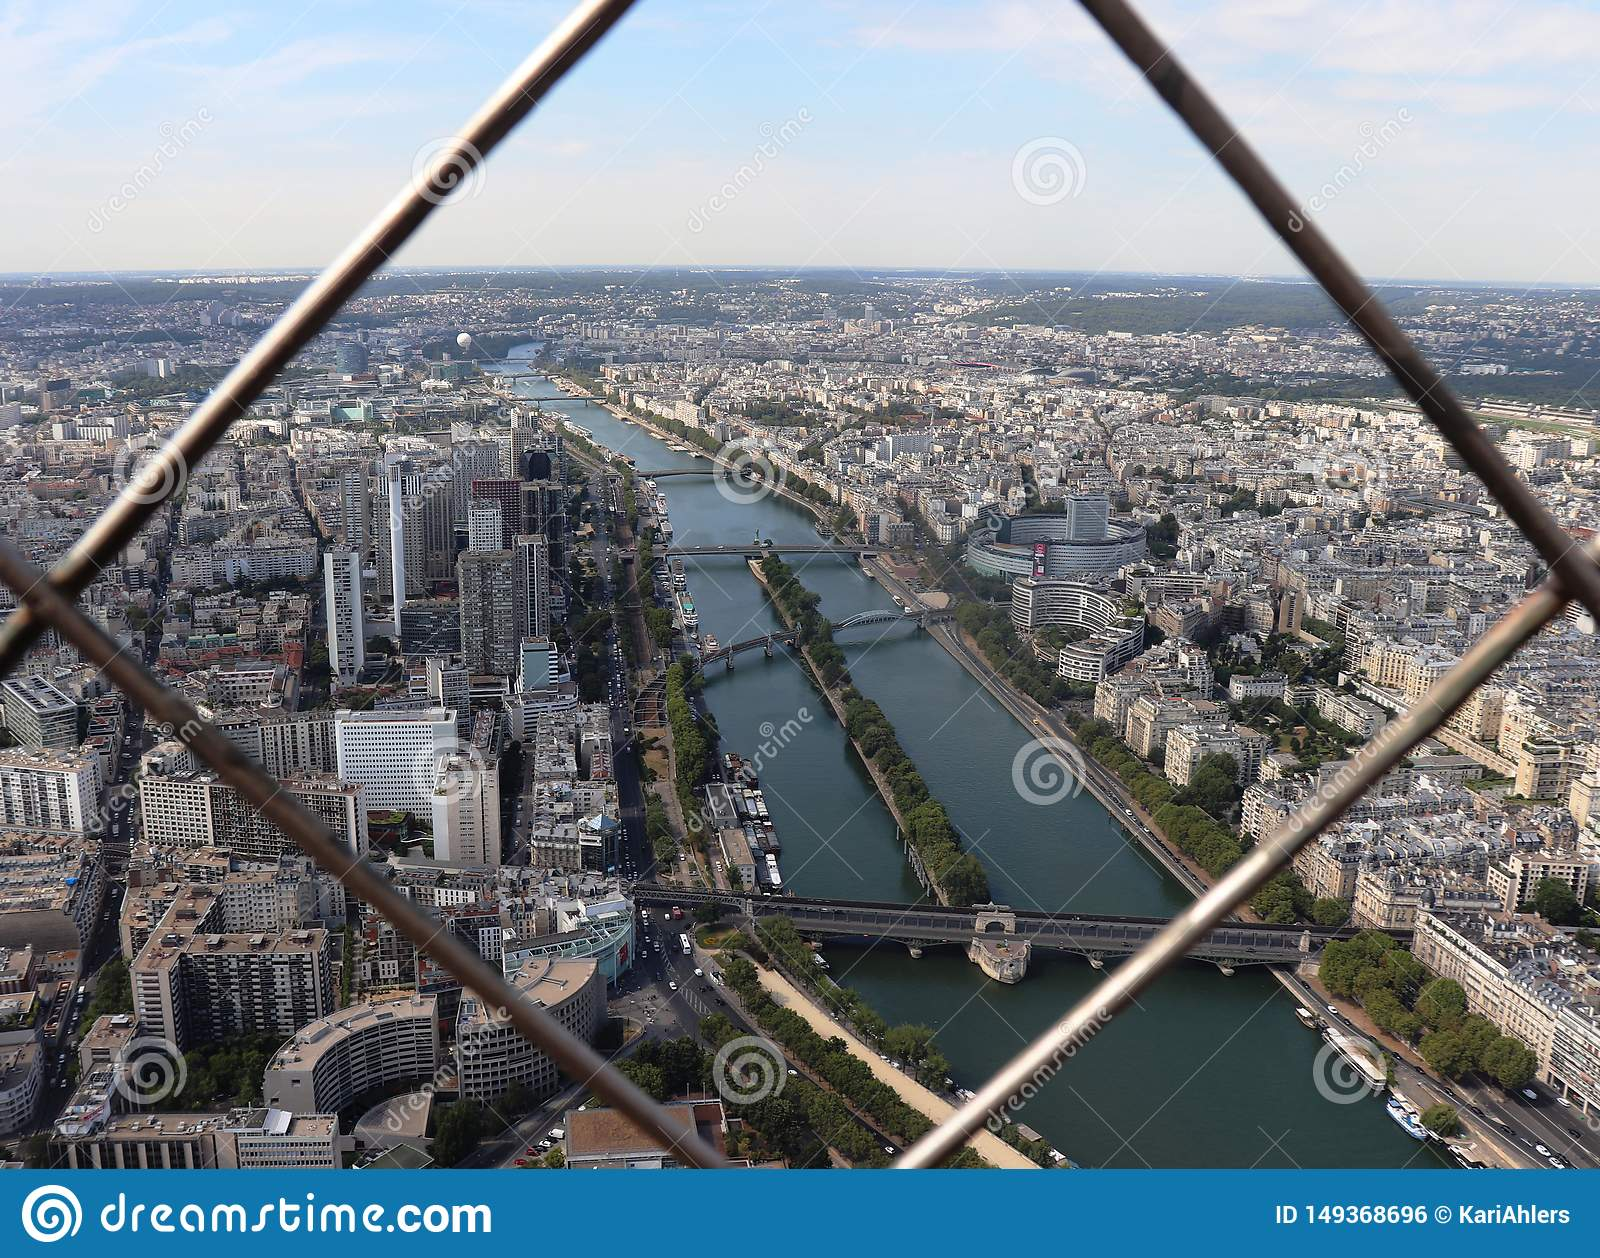 The Seine and Paris through the bars of the Eiffel Tower